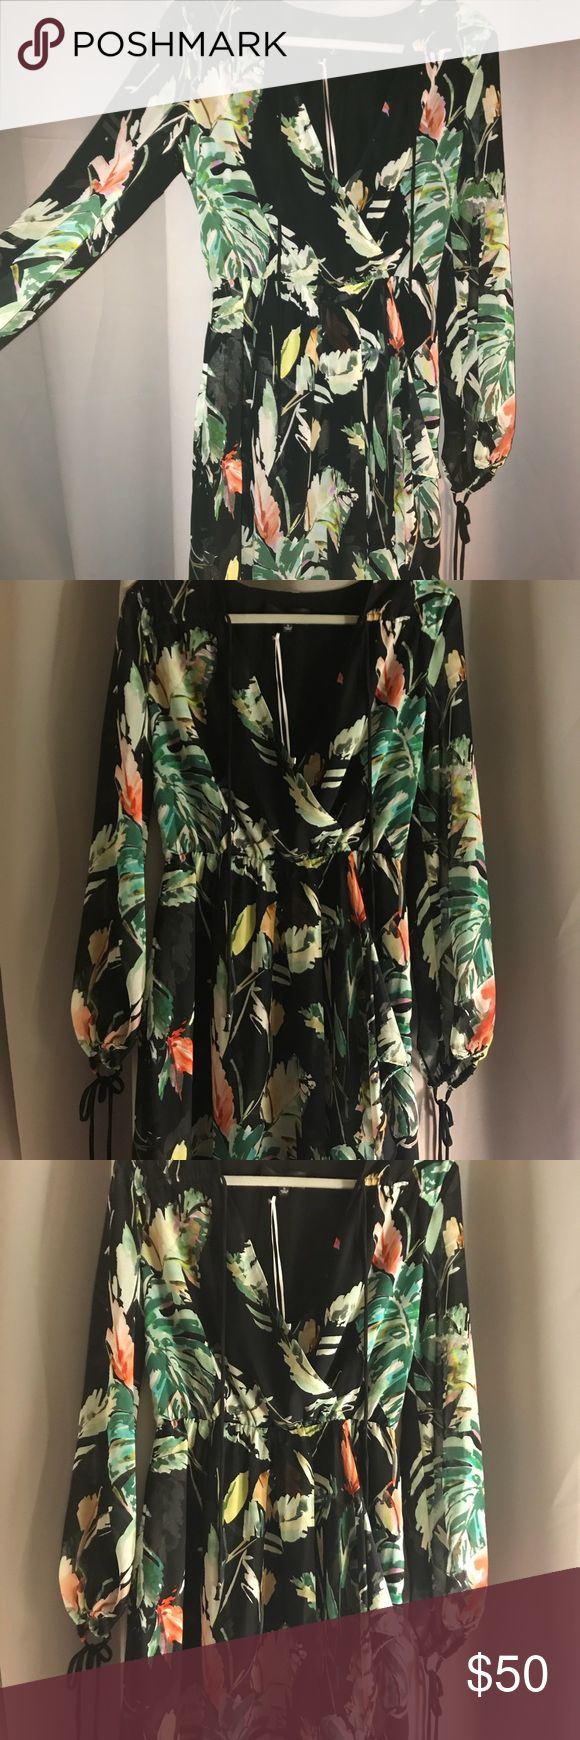 Gorgeous floral long sleeve dress. Brand new! Brand new with tags! Bought at a boutique in Encinitas, CA and just didn't fit. Never been worn. Perfect dress for a vacation :) Adelyn Rae Dresses Long Sleeve